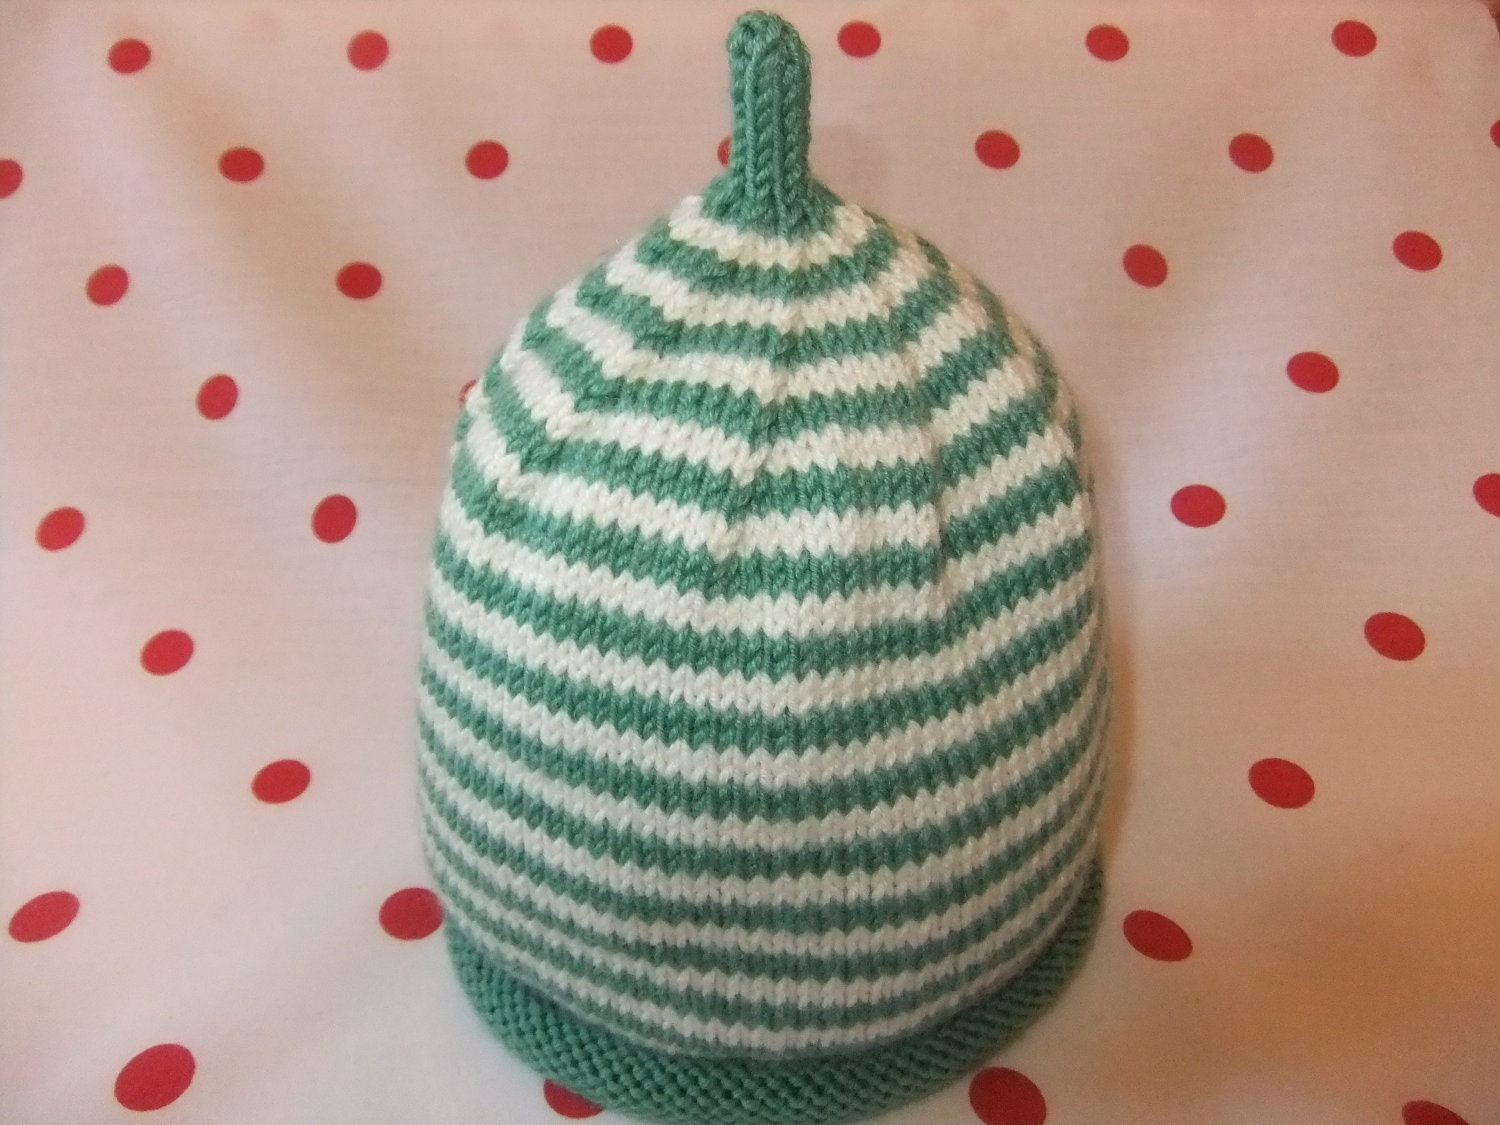 Hand knitted green and cream stripey baby beanie hat   39 months